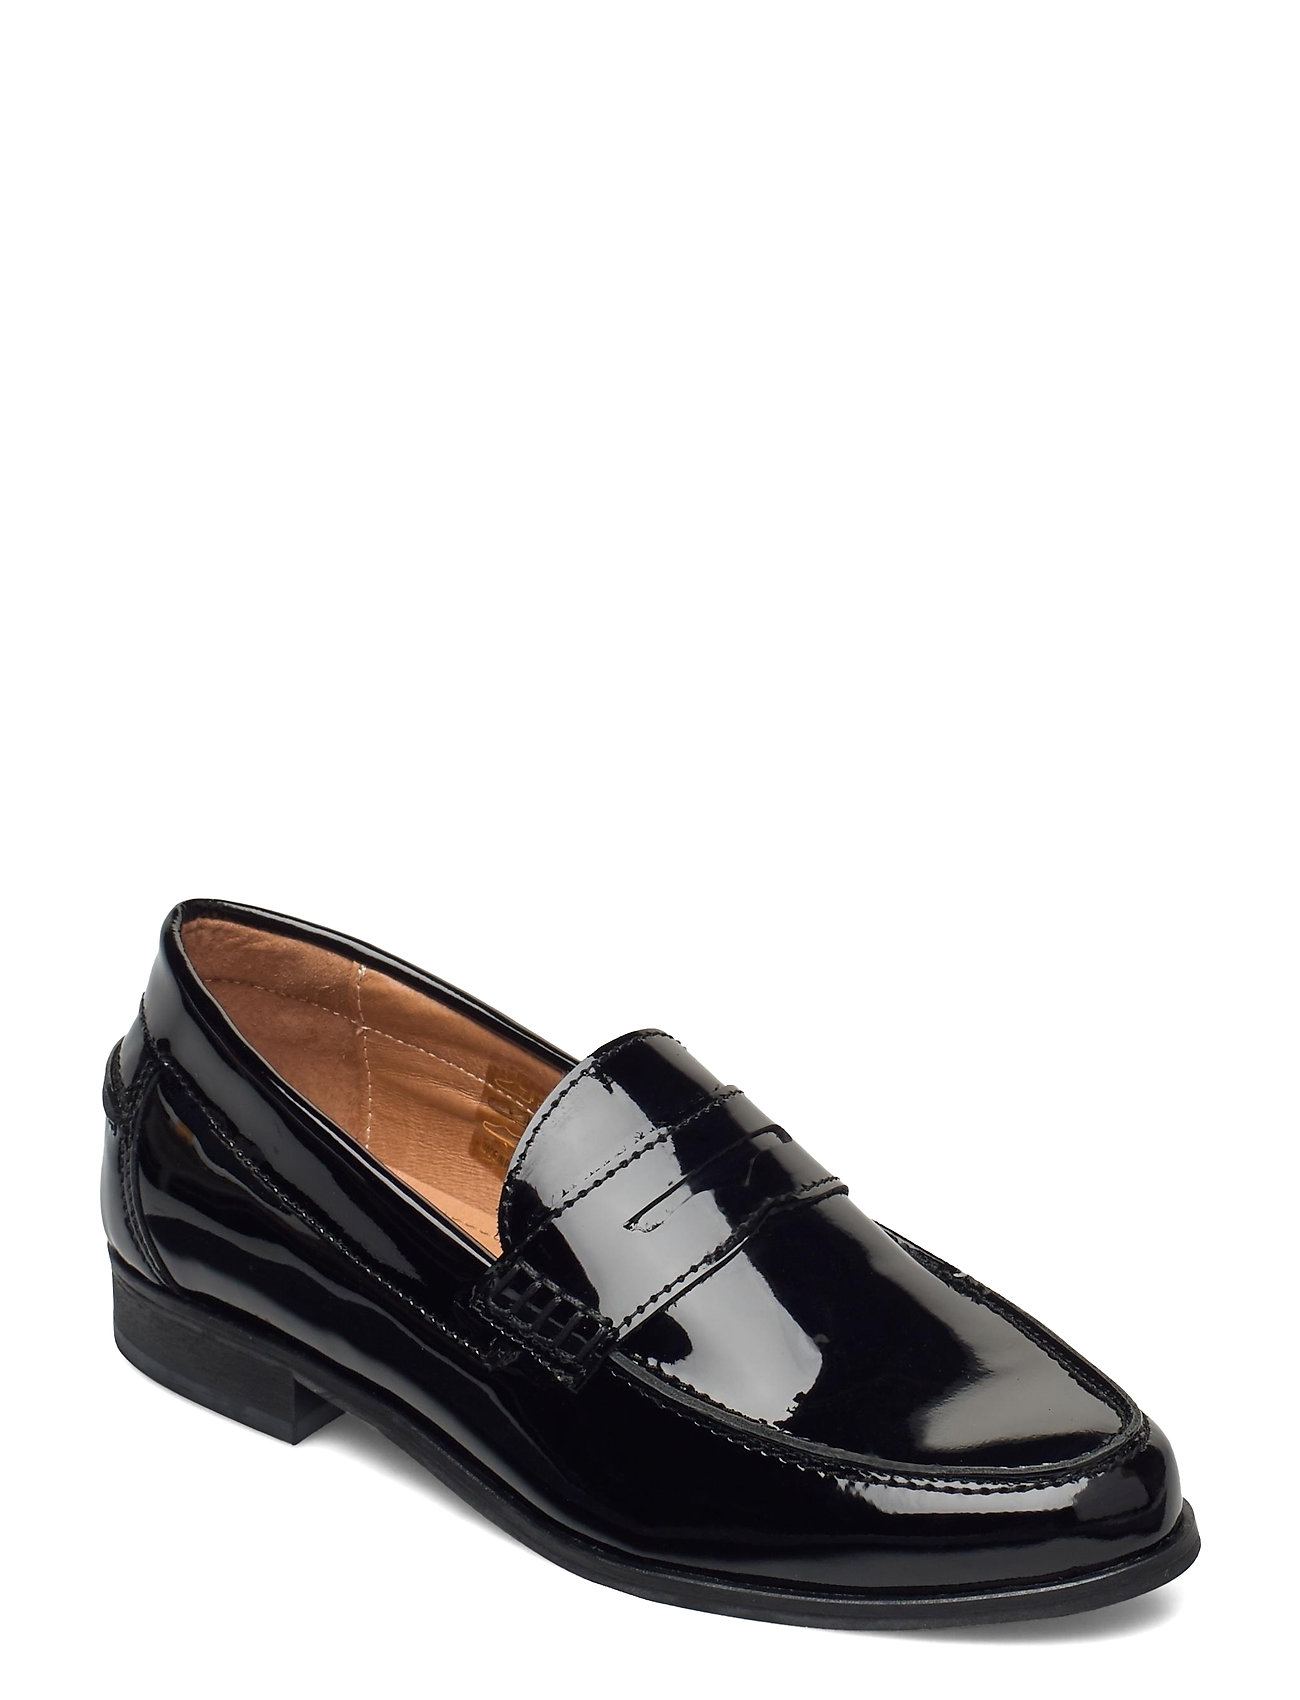 Image of Lady Loafer Loafers Flade Sko Sort Morris Lady (3486936979)